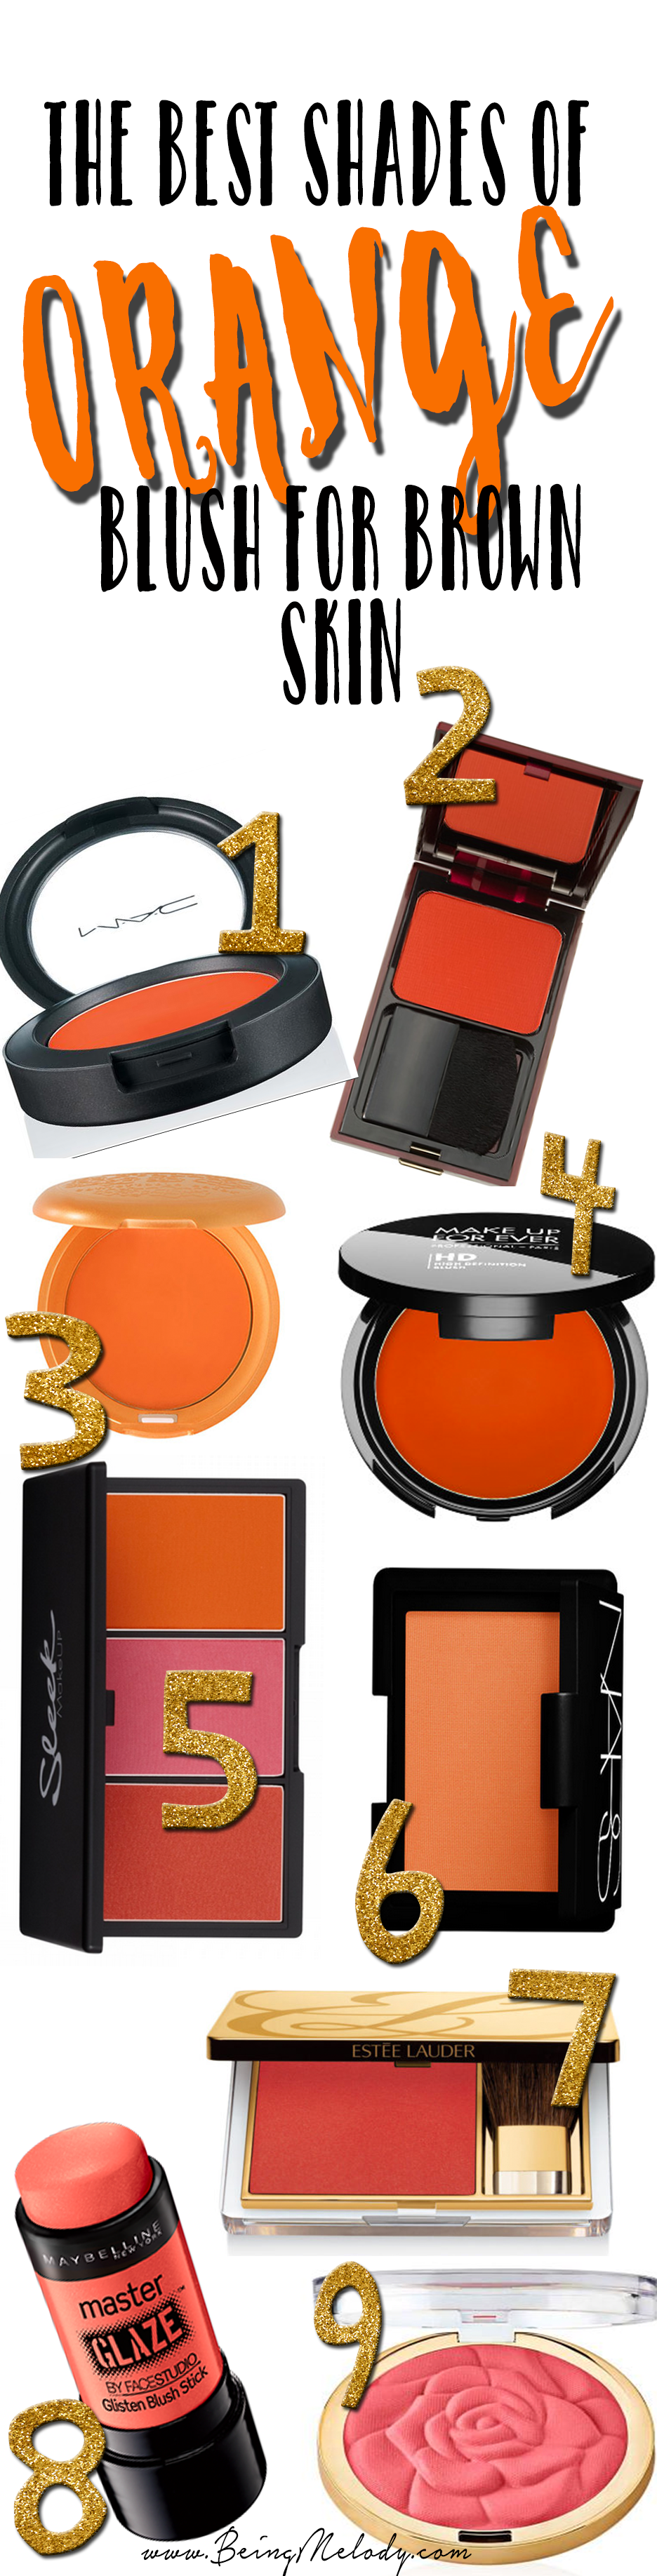 The Best Shades of Orange Blush for Brown Skin - www.beingmelody.com